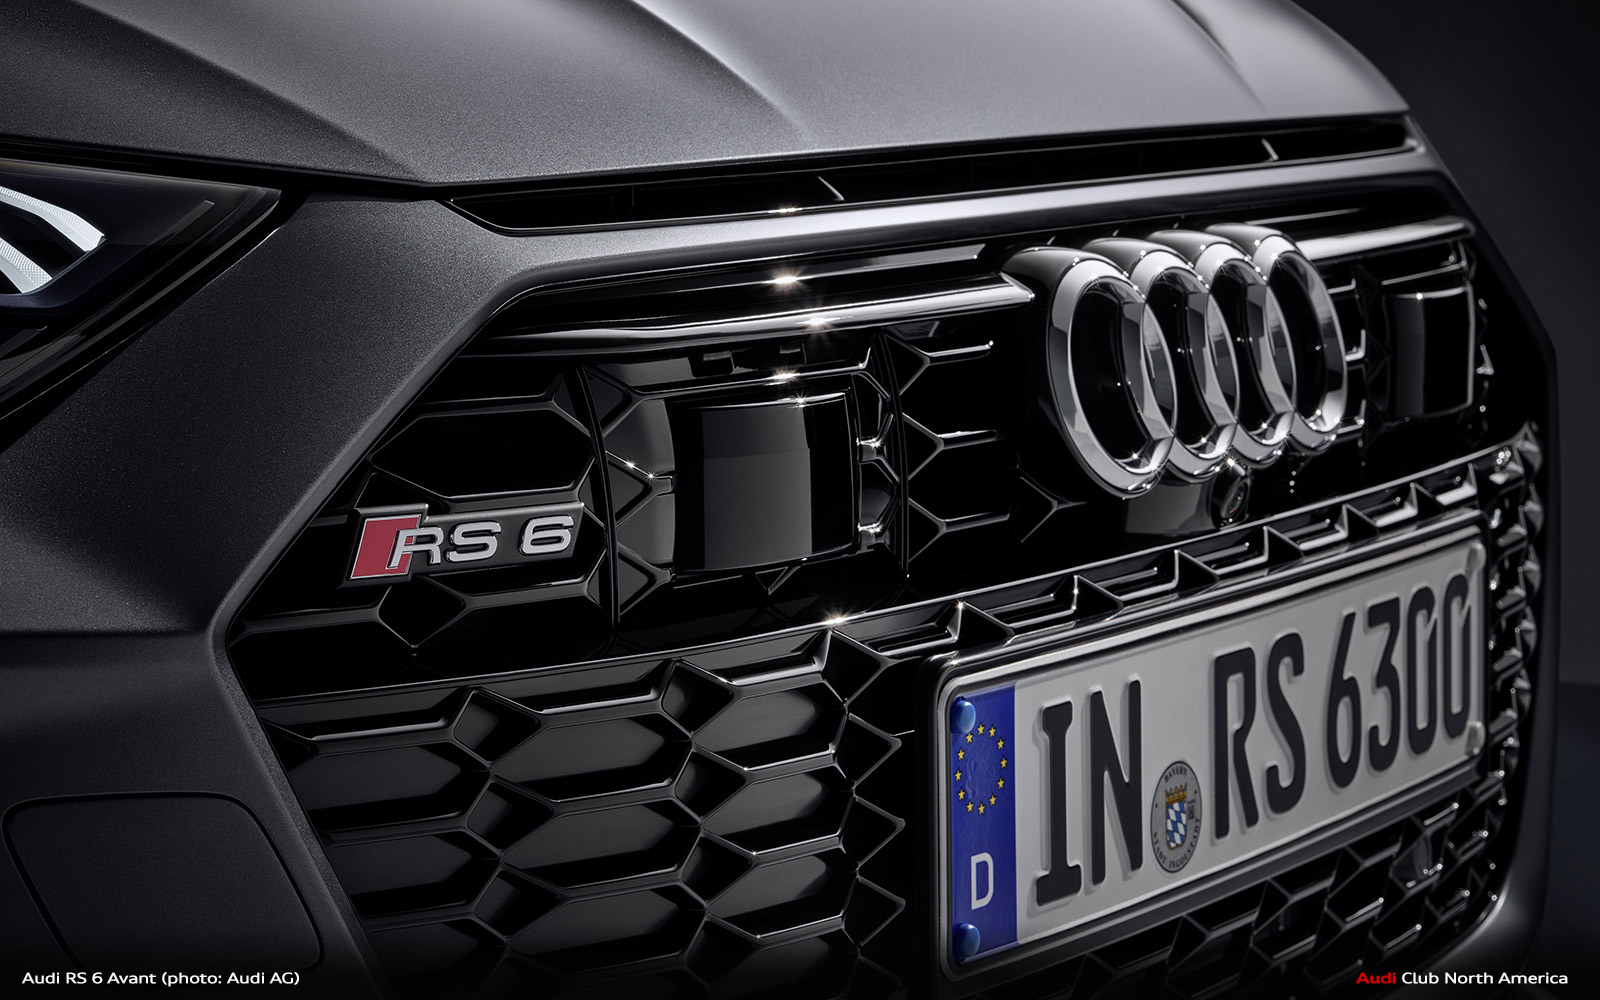 Confirmed: All-New Audi RS 6 Avant Is Coming to America!!!